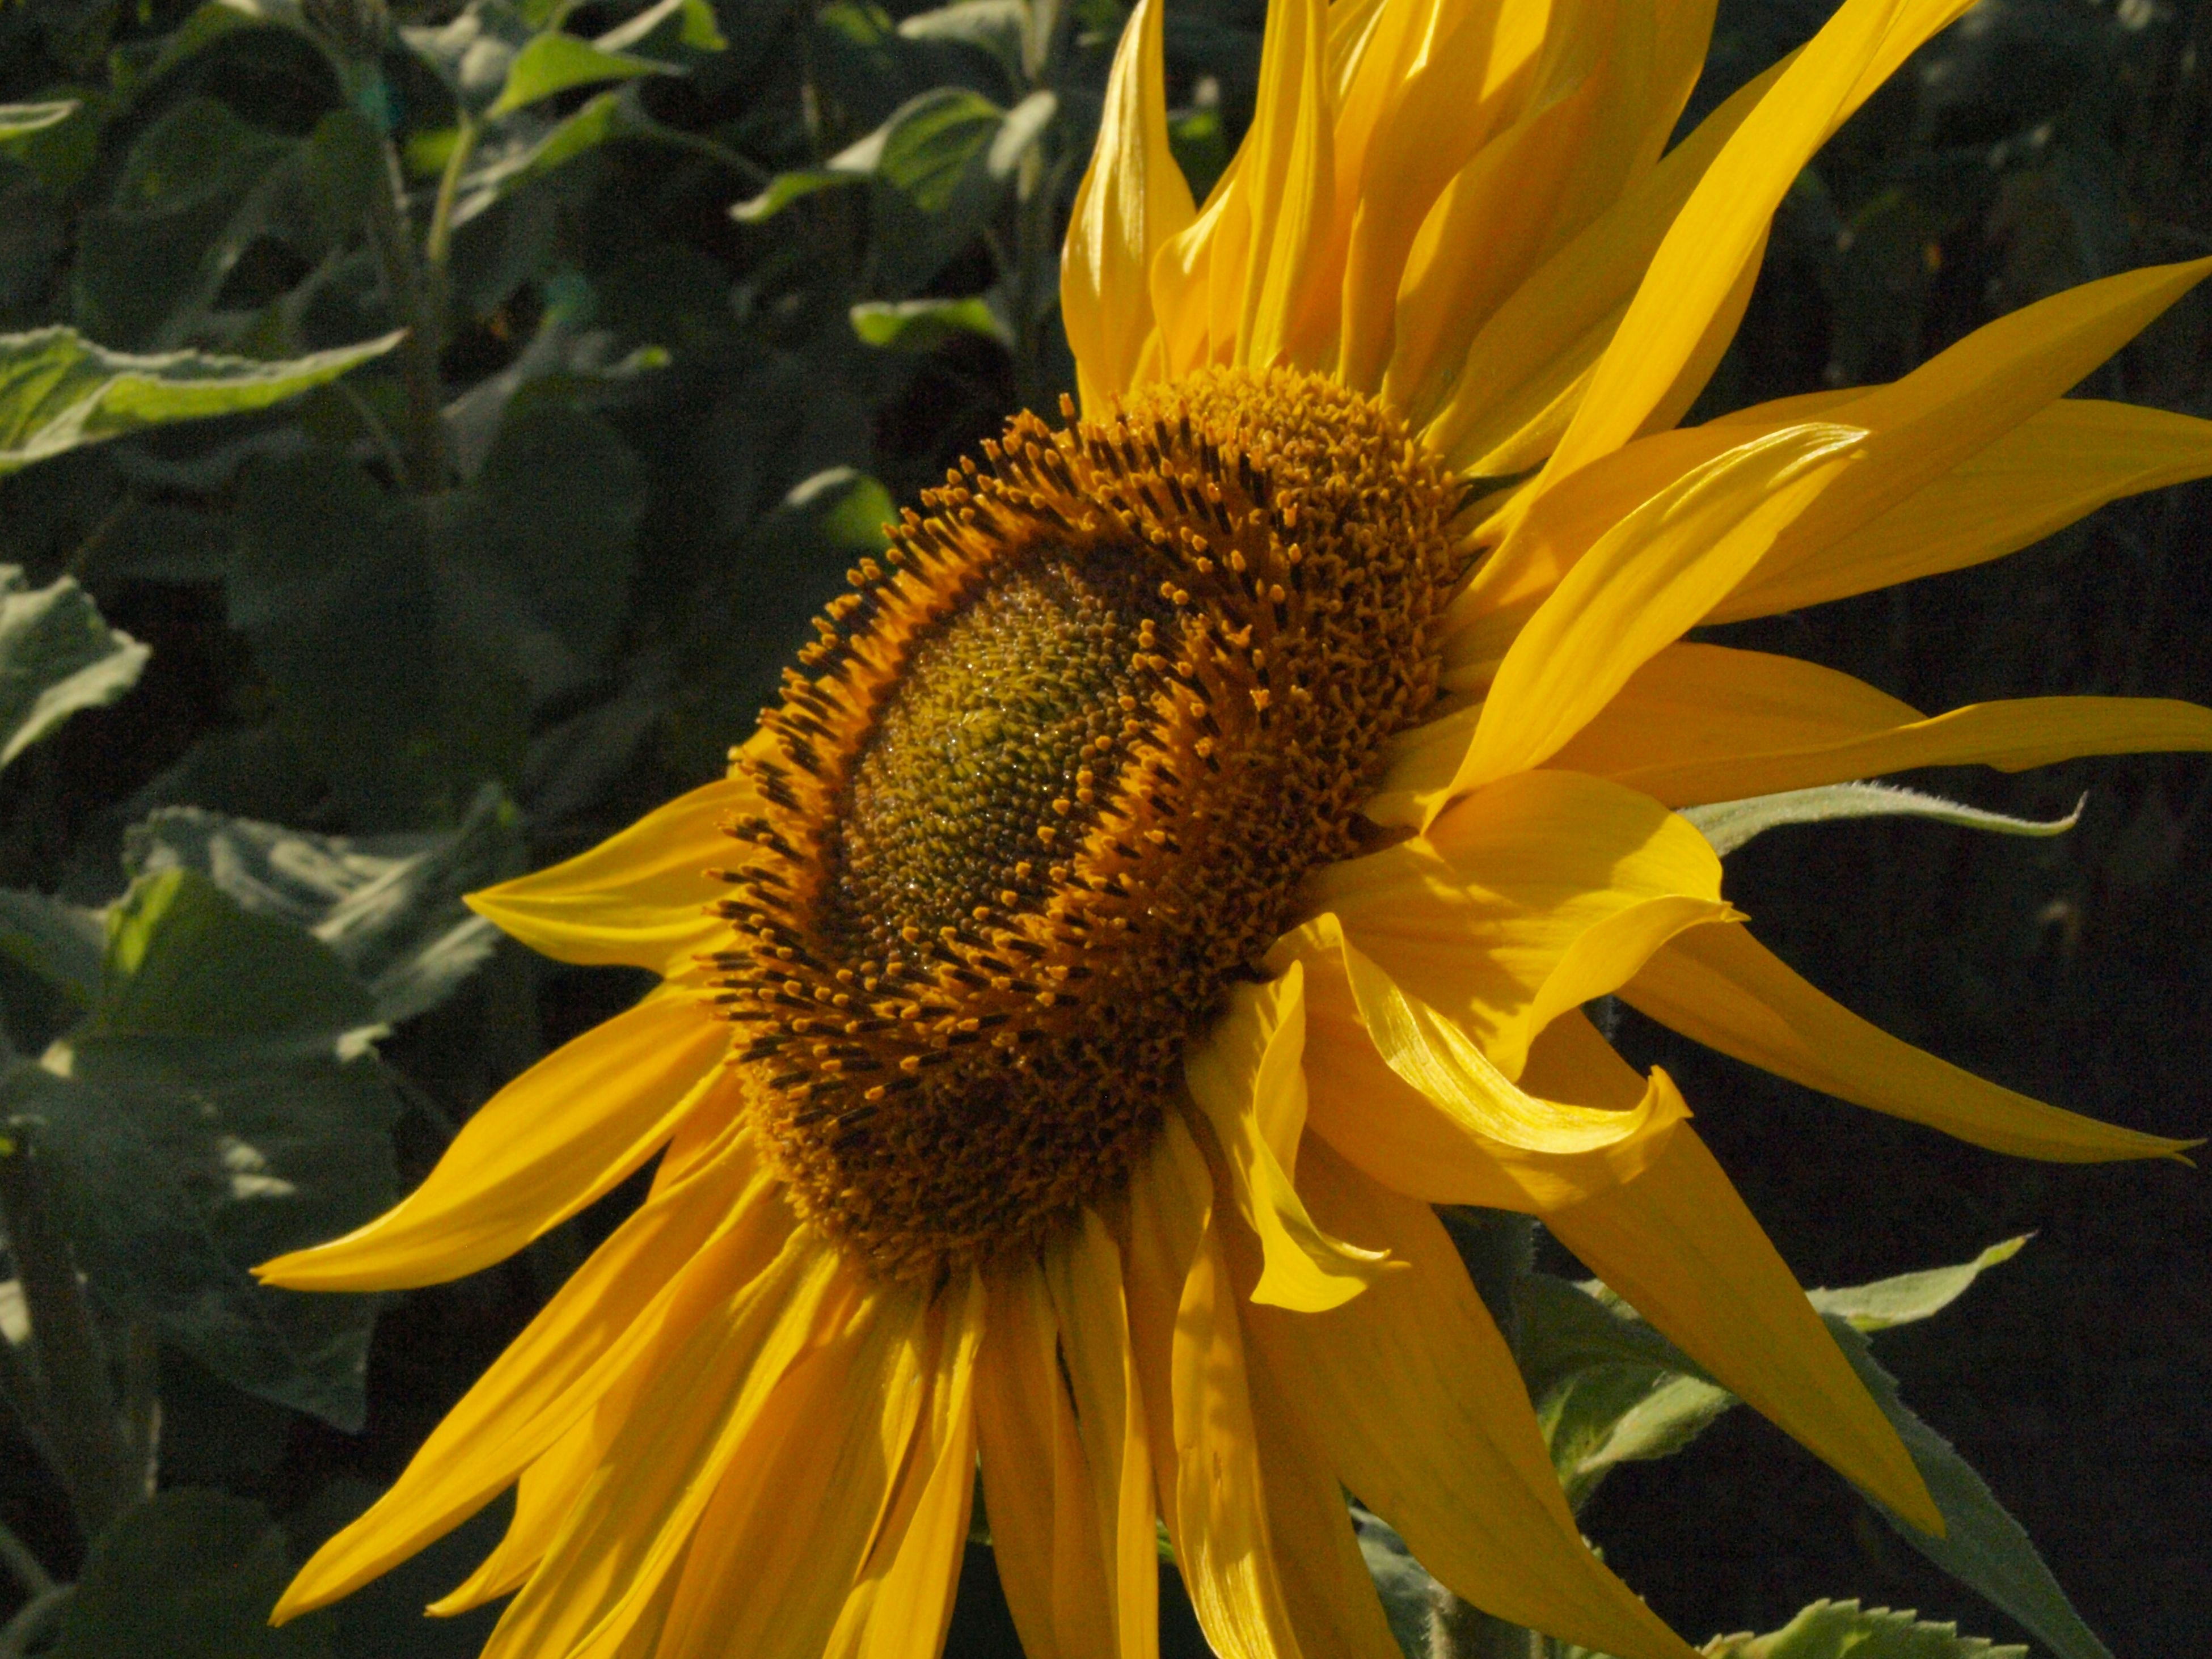 flower, yellow, petal, freshness, flower head, fragility, pollen, one animal, beauty in nature, growth, animal themes, close-up, animals in the wild, blooming, nature, plant, wildlife, sunflower, insect, single flower